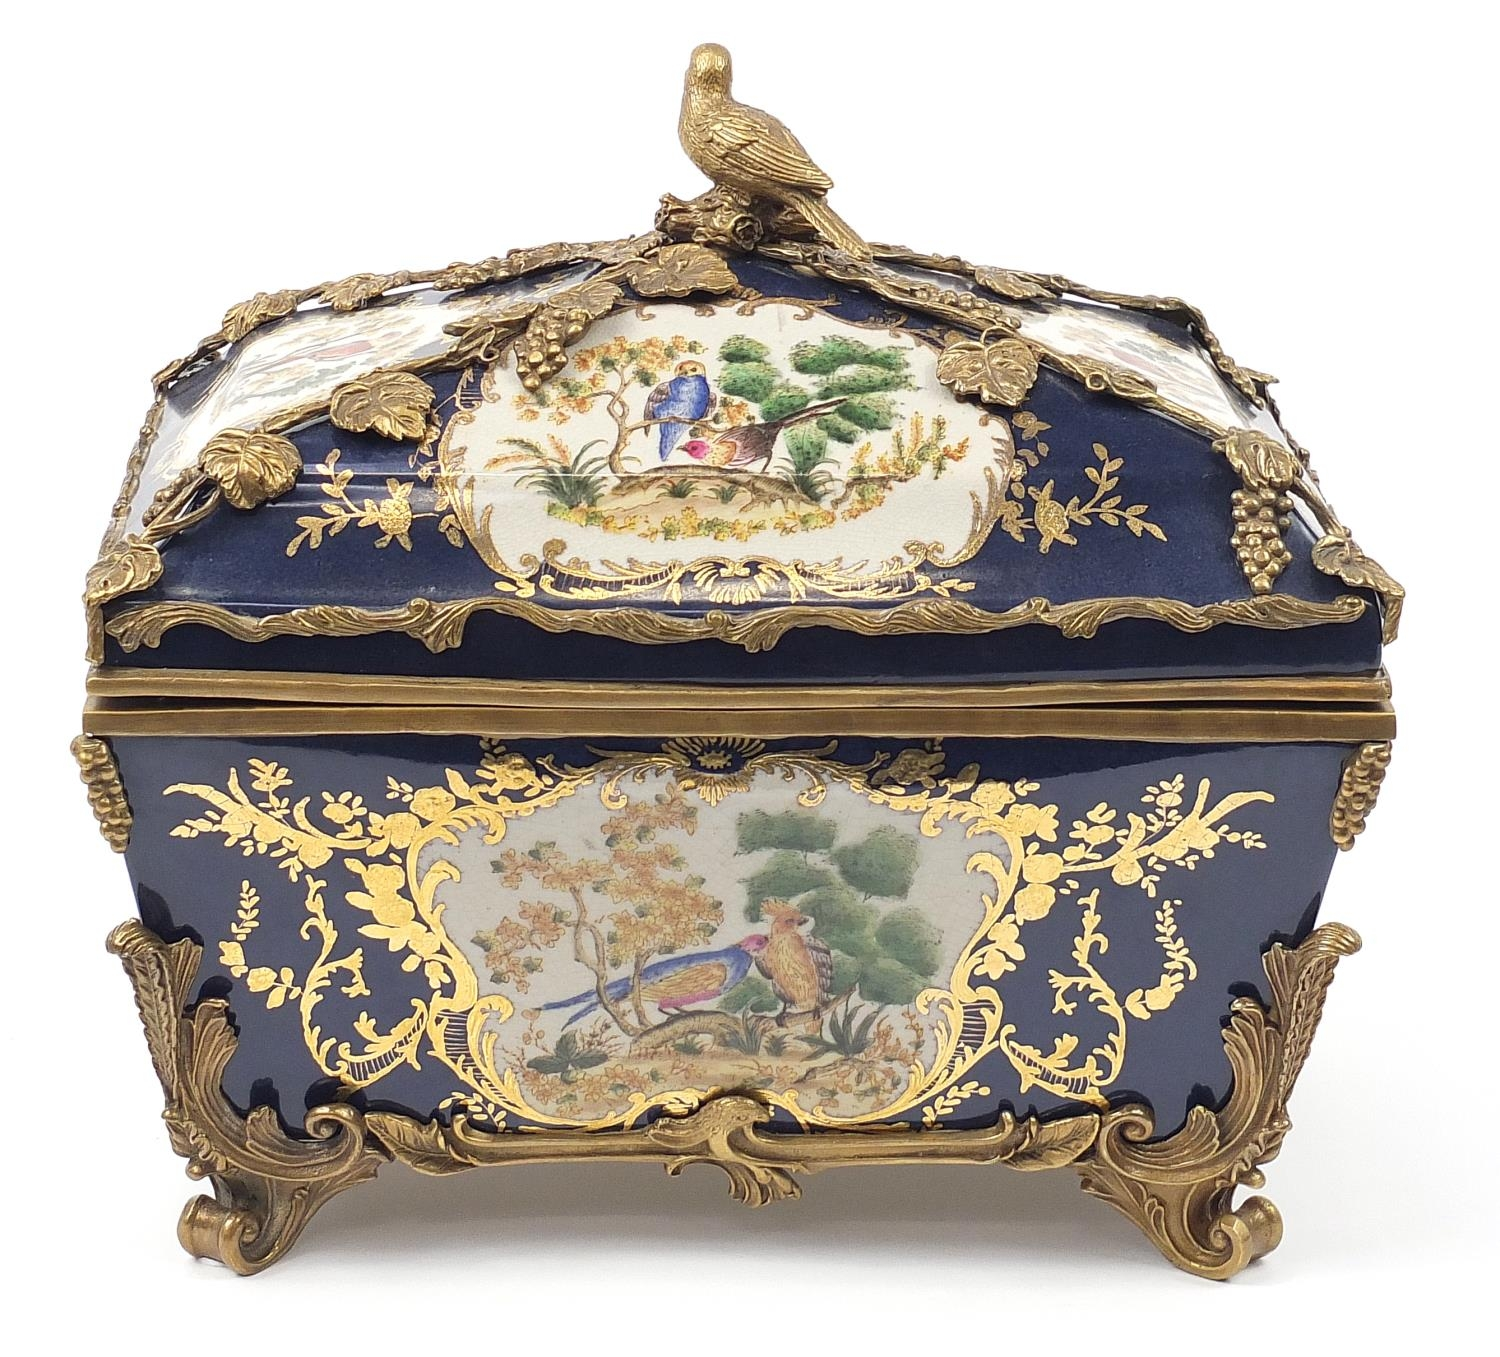 Continental bronze mounted porcelain table casket decorated with birds, leaves and berries, 35cm H x - Image 5 of 10